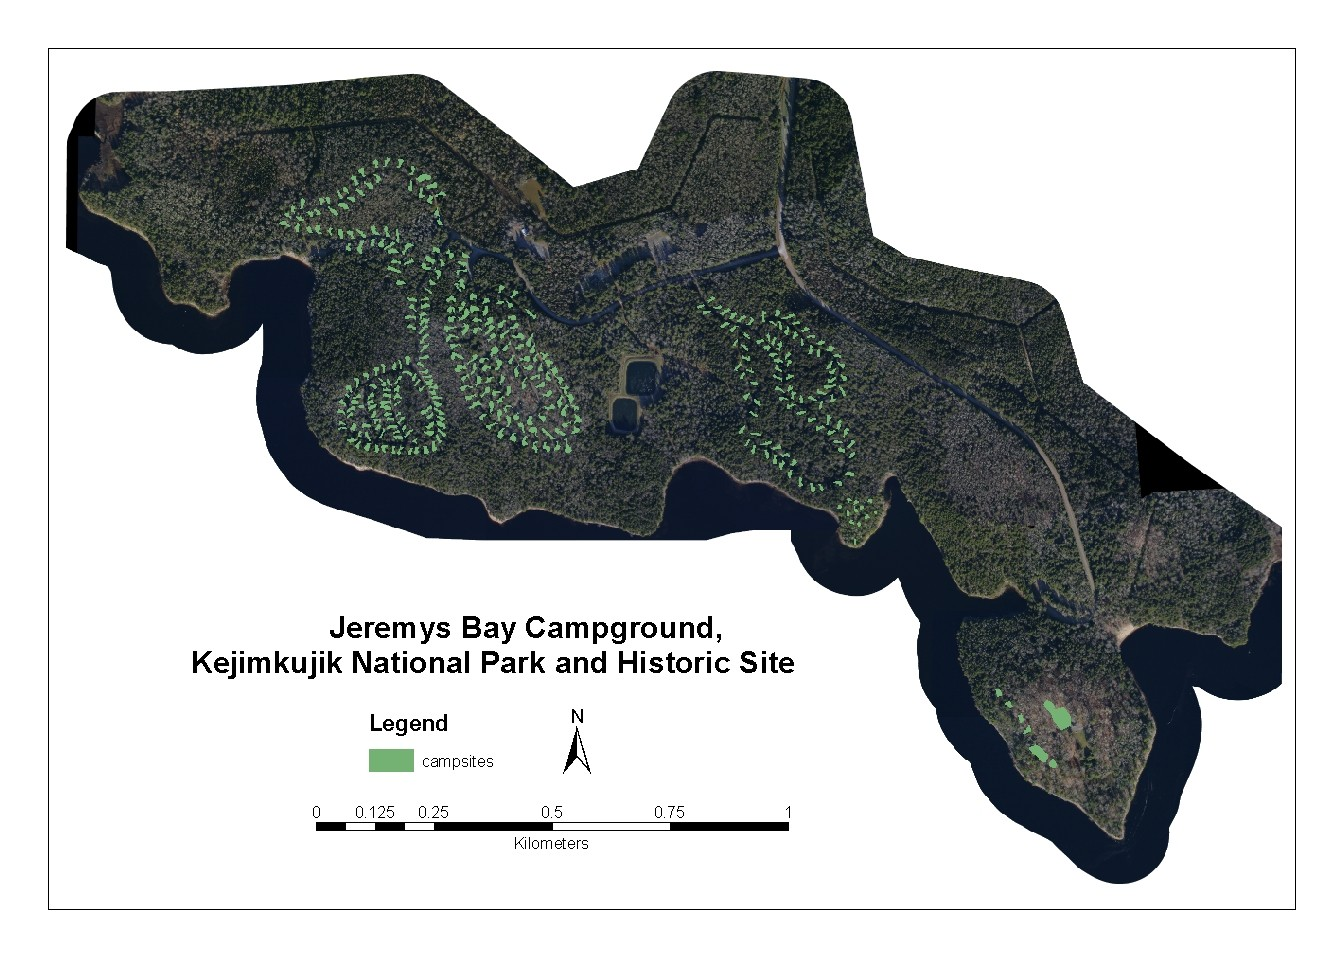 25 cm aerial photos of Jeremys Bay Campground, Kejimkujik National Park and Historic Site